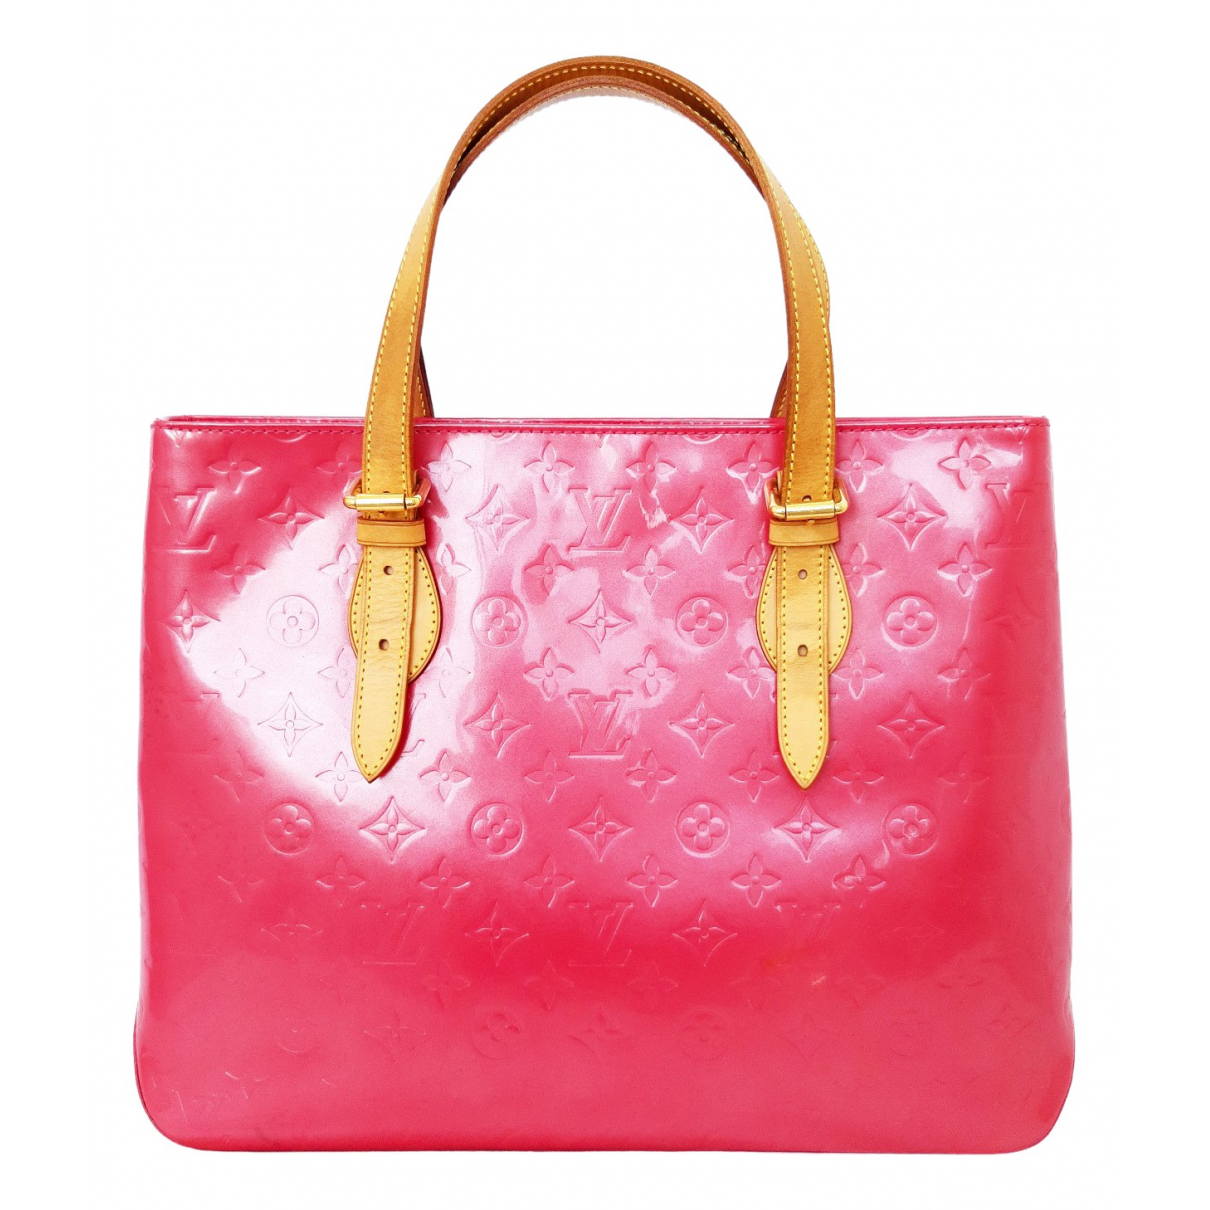 Louis Vuitton Brentwood Pink Patent leather handbag for Women \N